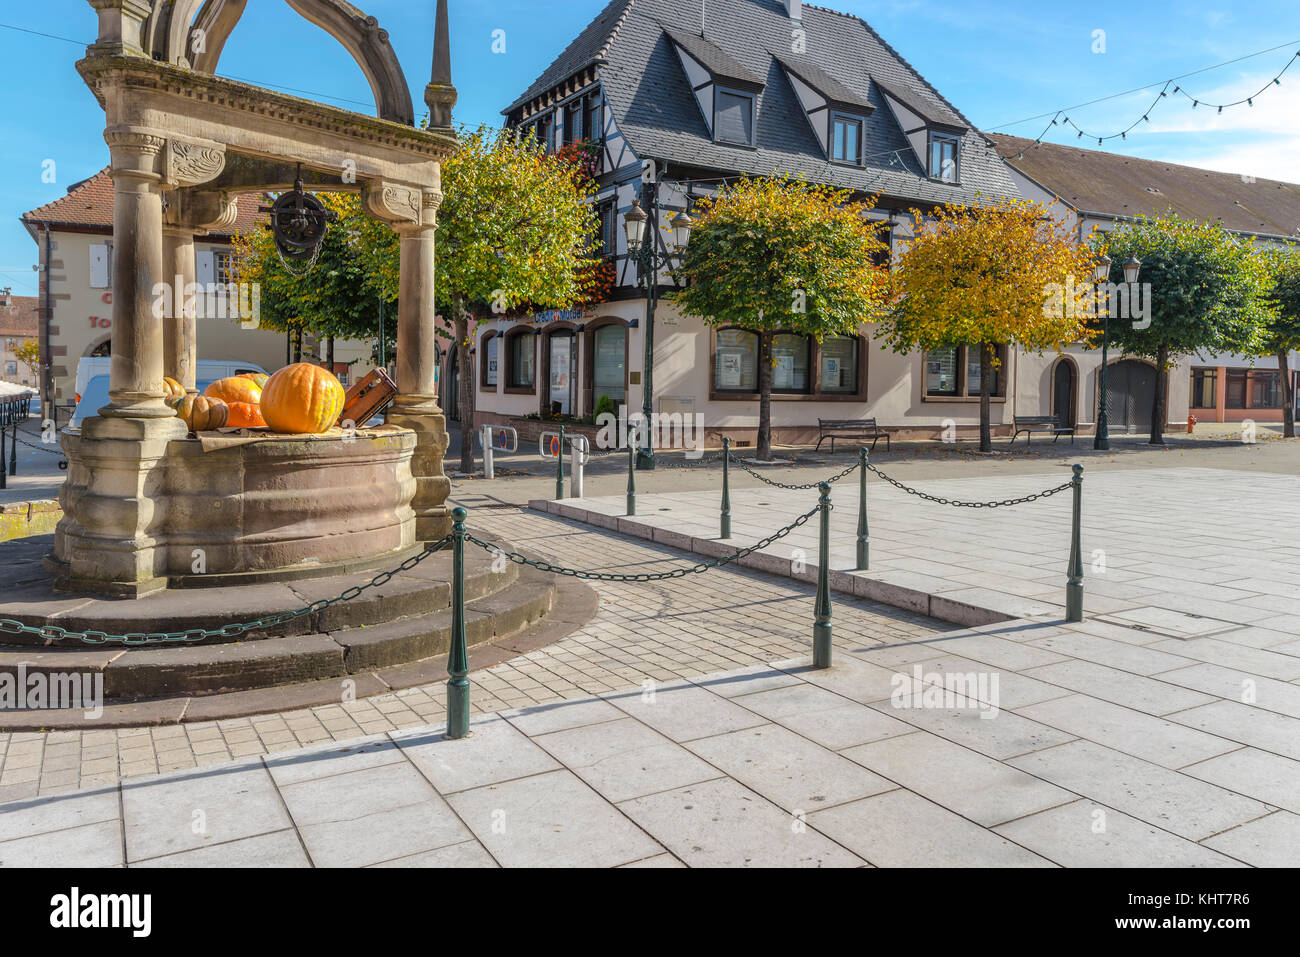 medieval well decorated with pumpkin, picturesque village Rosheim, Alsace, France - Stock Image